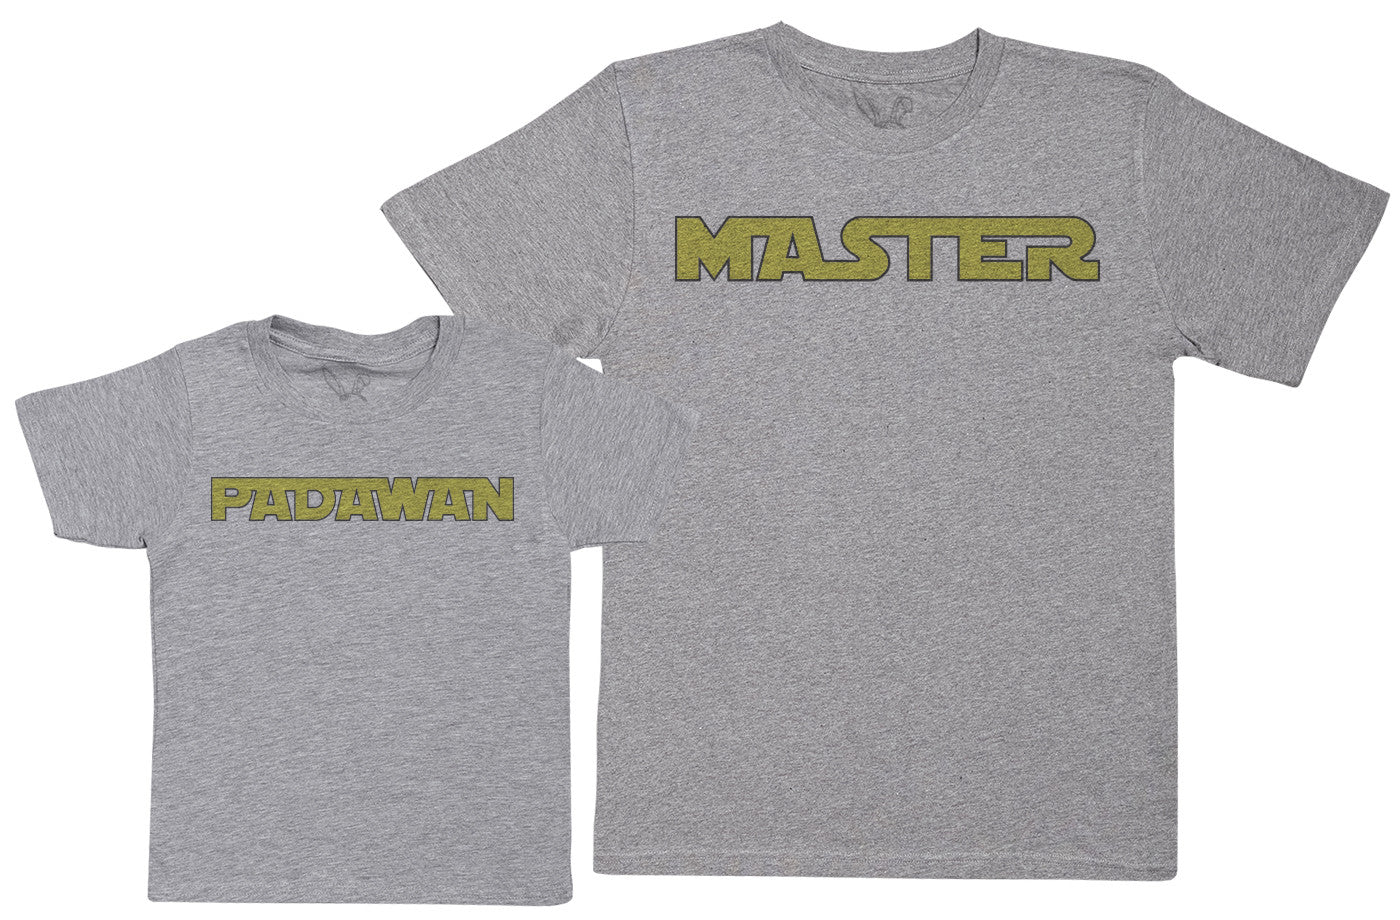 Master & Padawan - Kid's Gift Set with Kid's T-Shirt & Father's T-Shirt